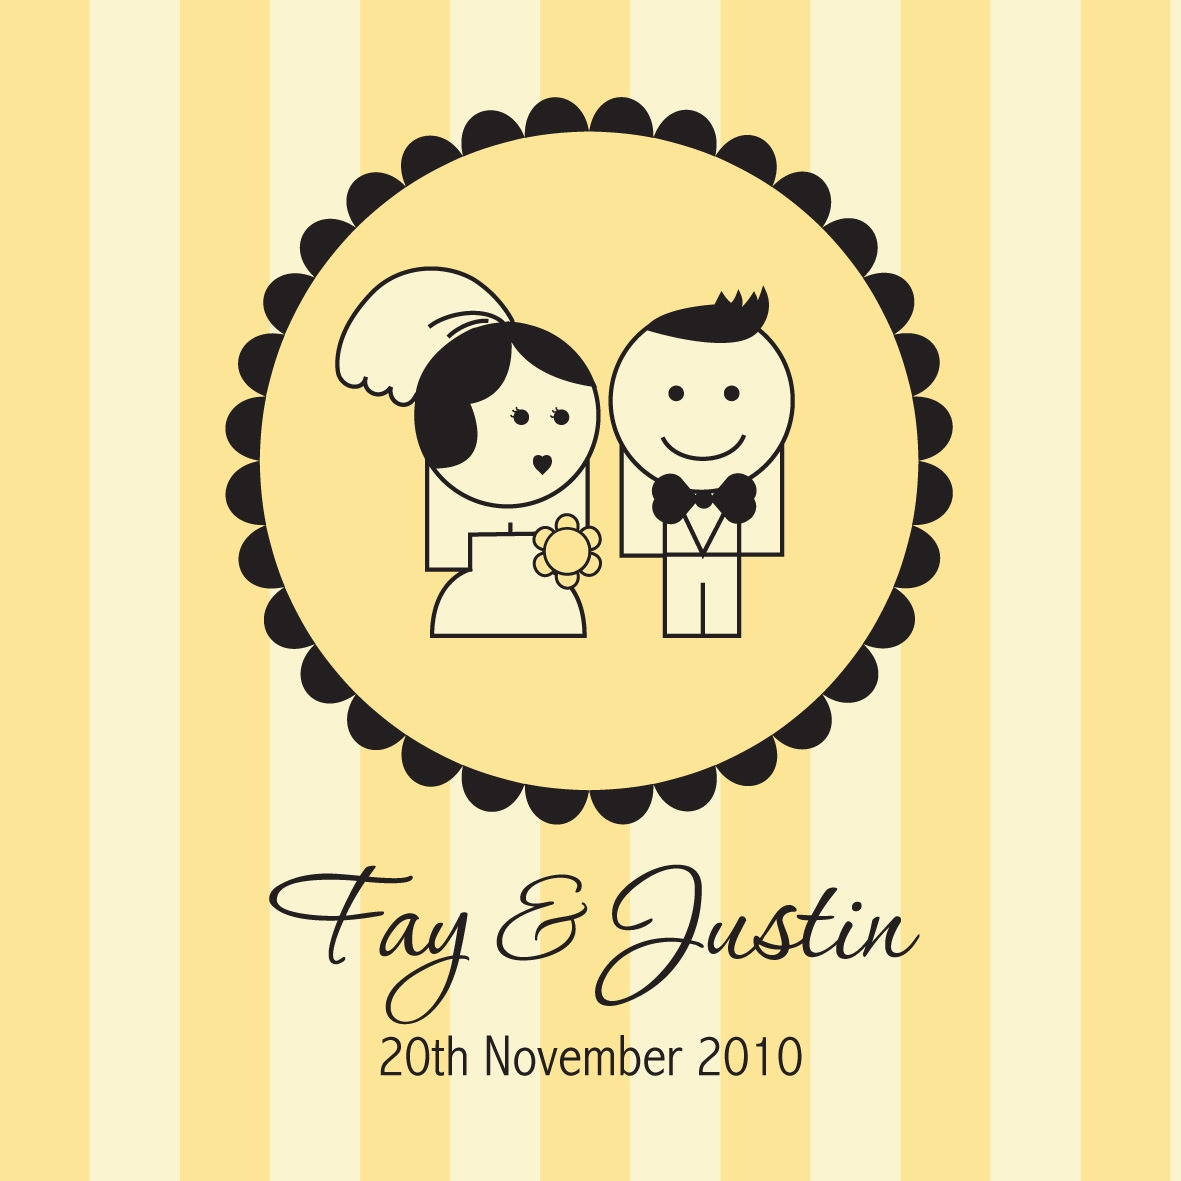 Photo Booth Personalised logo